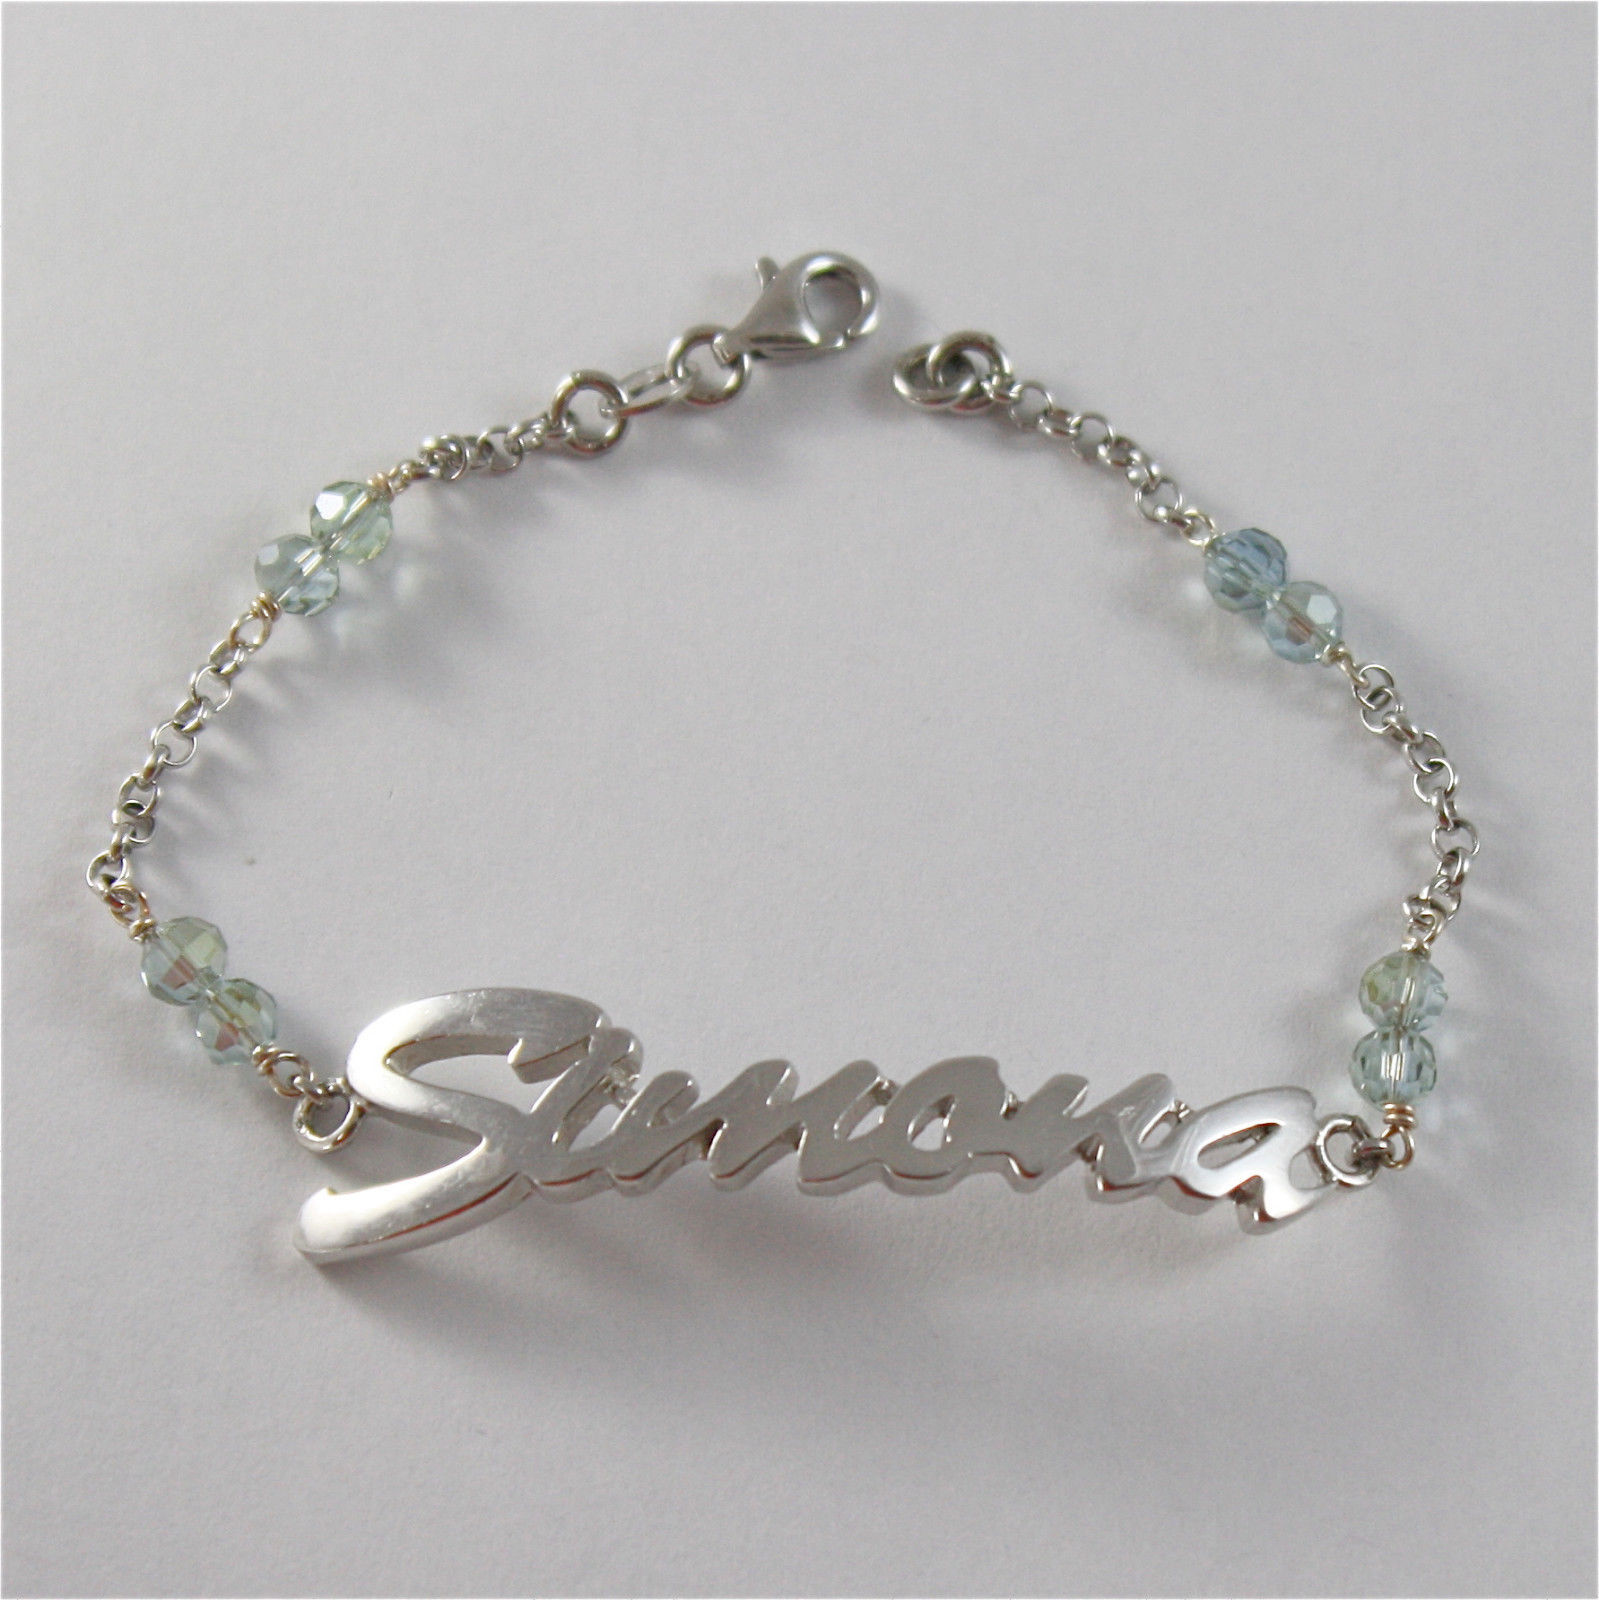 925 SILVER BRACELET WITH NAME SIMONA AND CUBIC ZIRCONIA MADE IN ITALY 79,00 USD